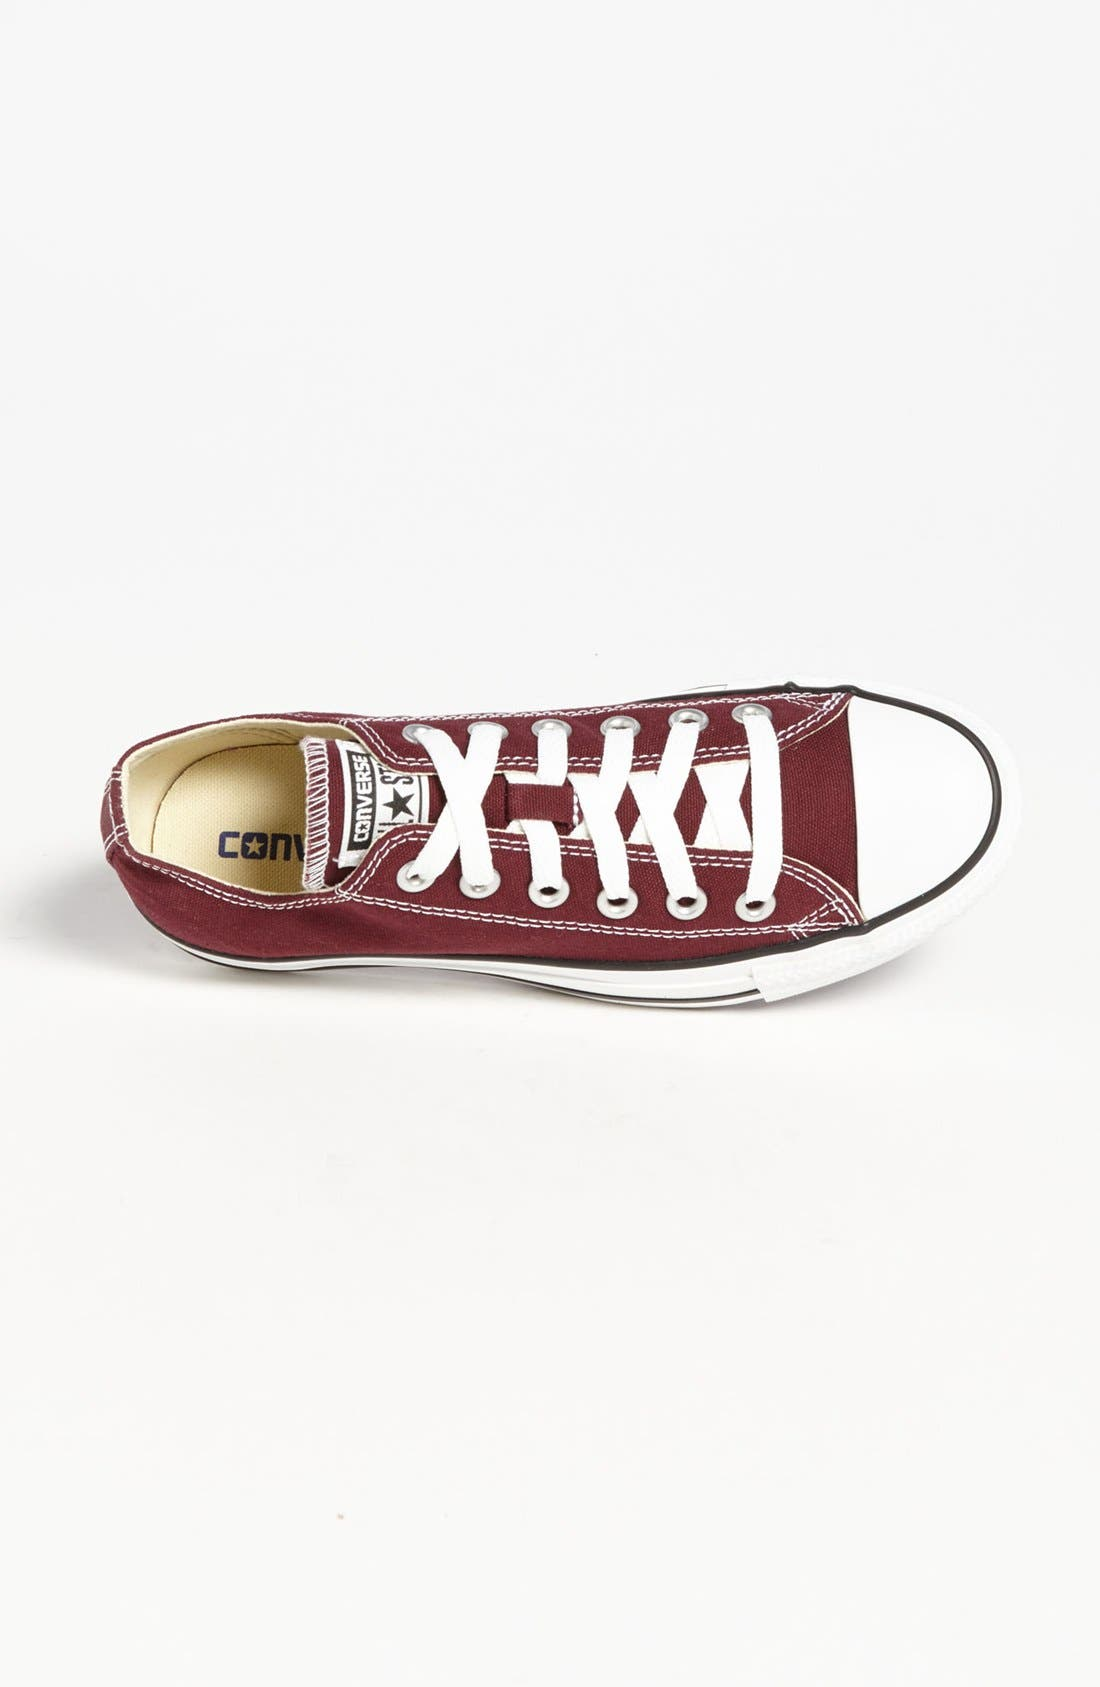 Chuck Taylor<sup>®</sup> All Star<sup>®</sup> Sneaker,                             Alternate thumbnail 4, color,                             930